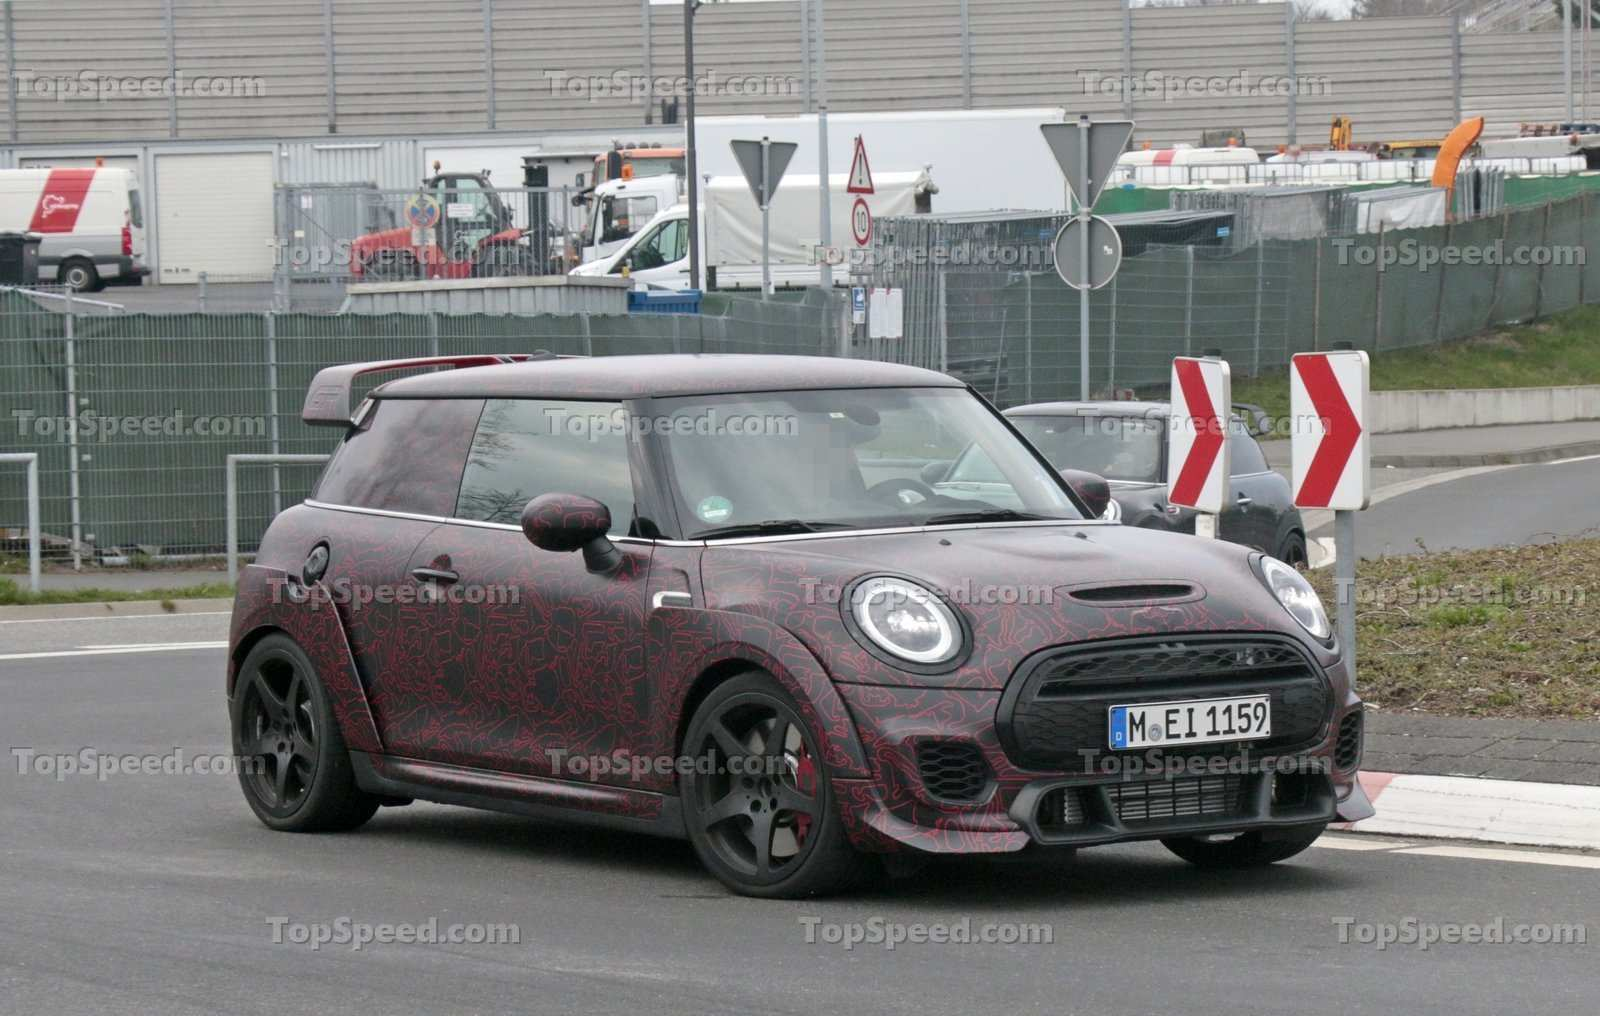 82 New 2020 Spy Shots Mini Countryman Review And Release Date